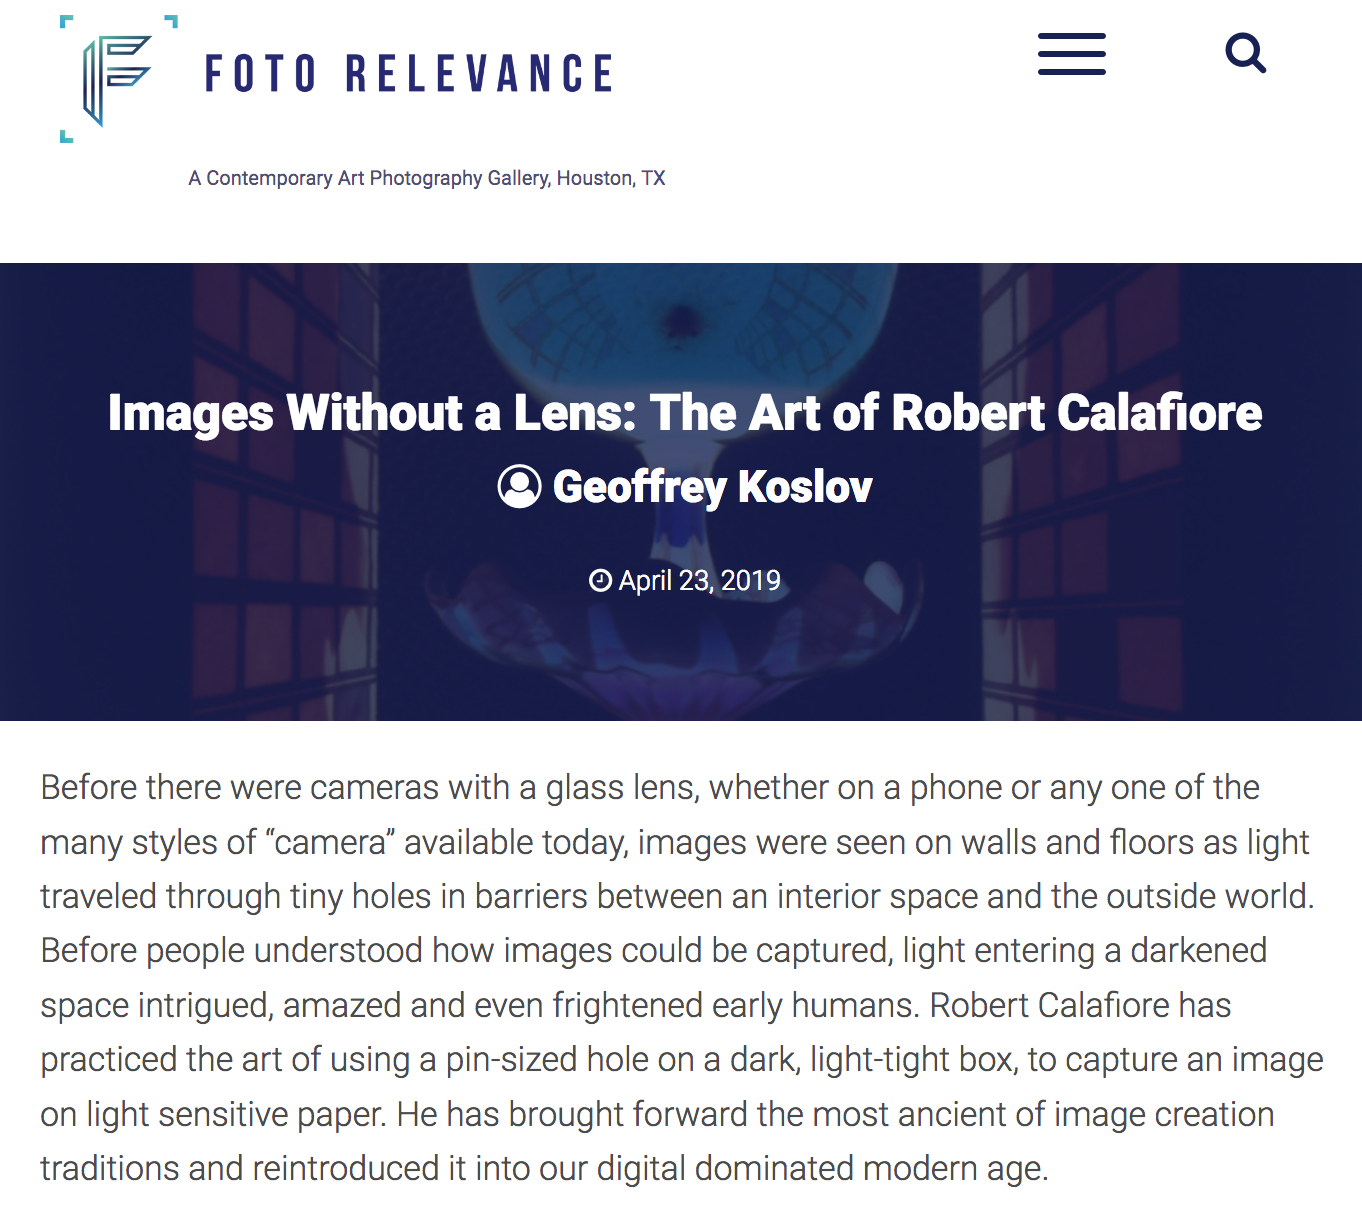 Read more here:   https://fotorelevance.com/images-without-a-lens-the-art-of-robert-calafiore/